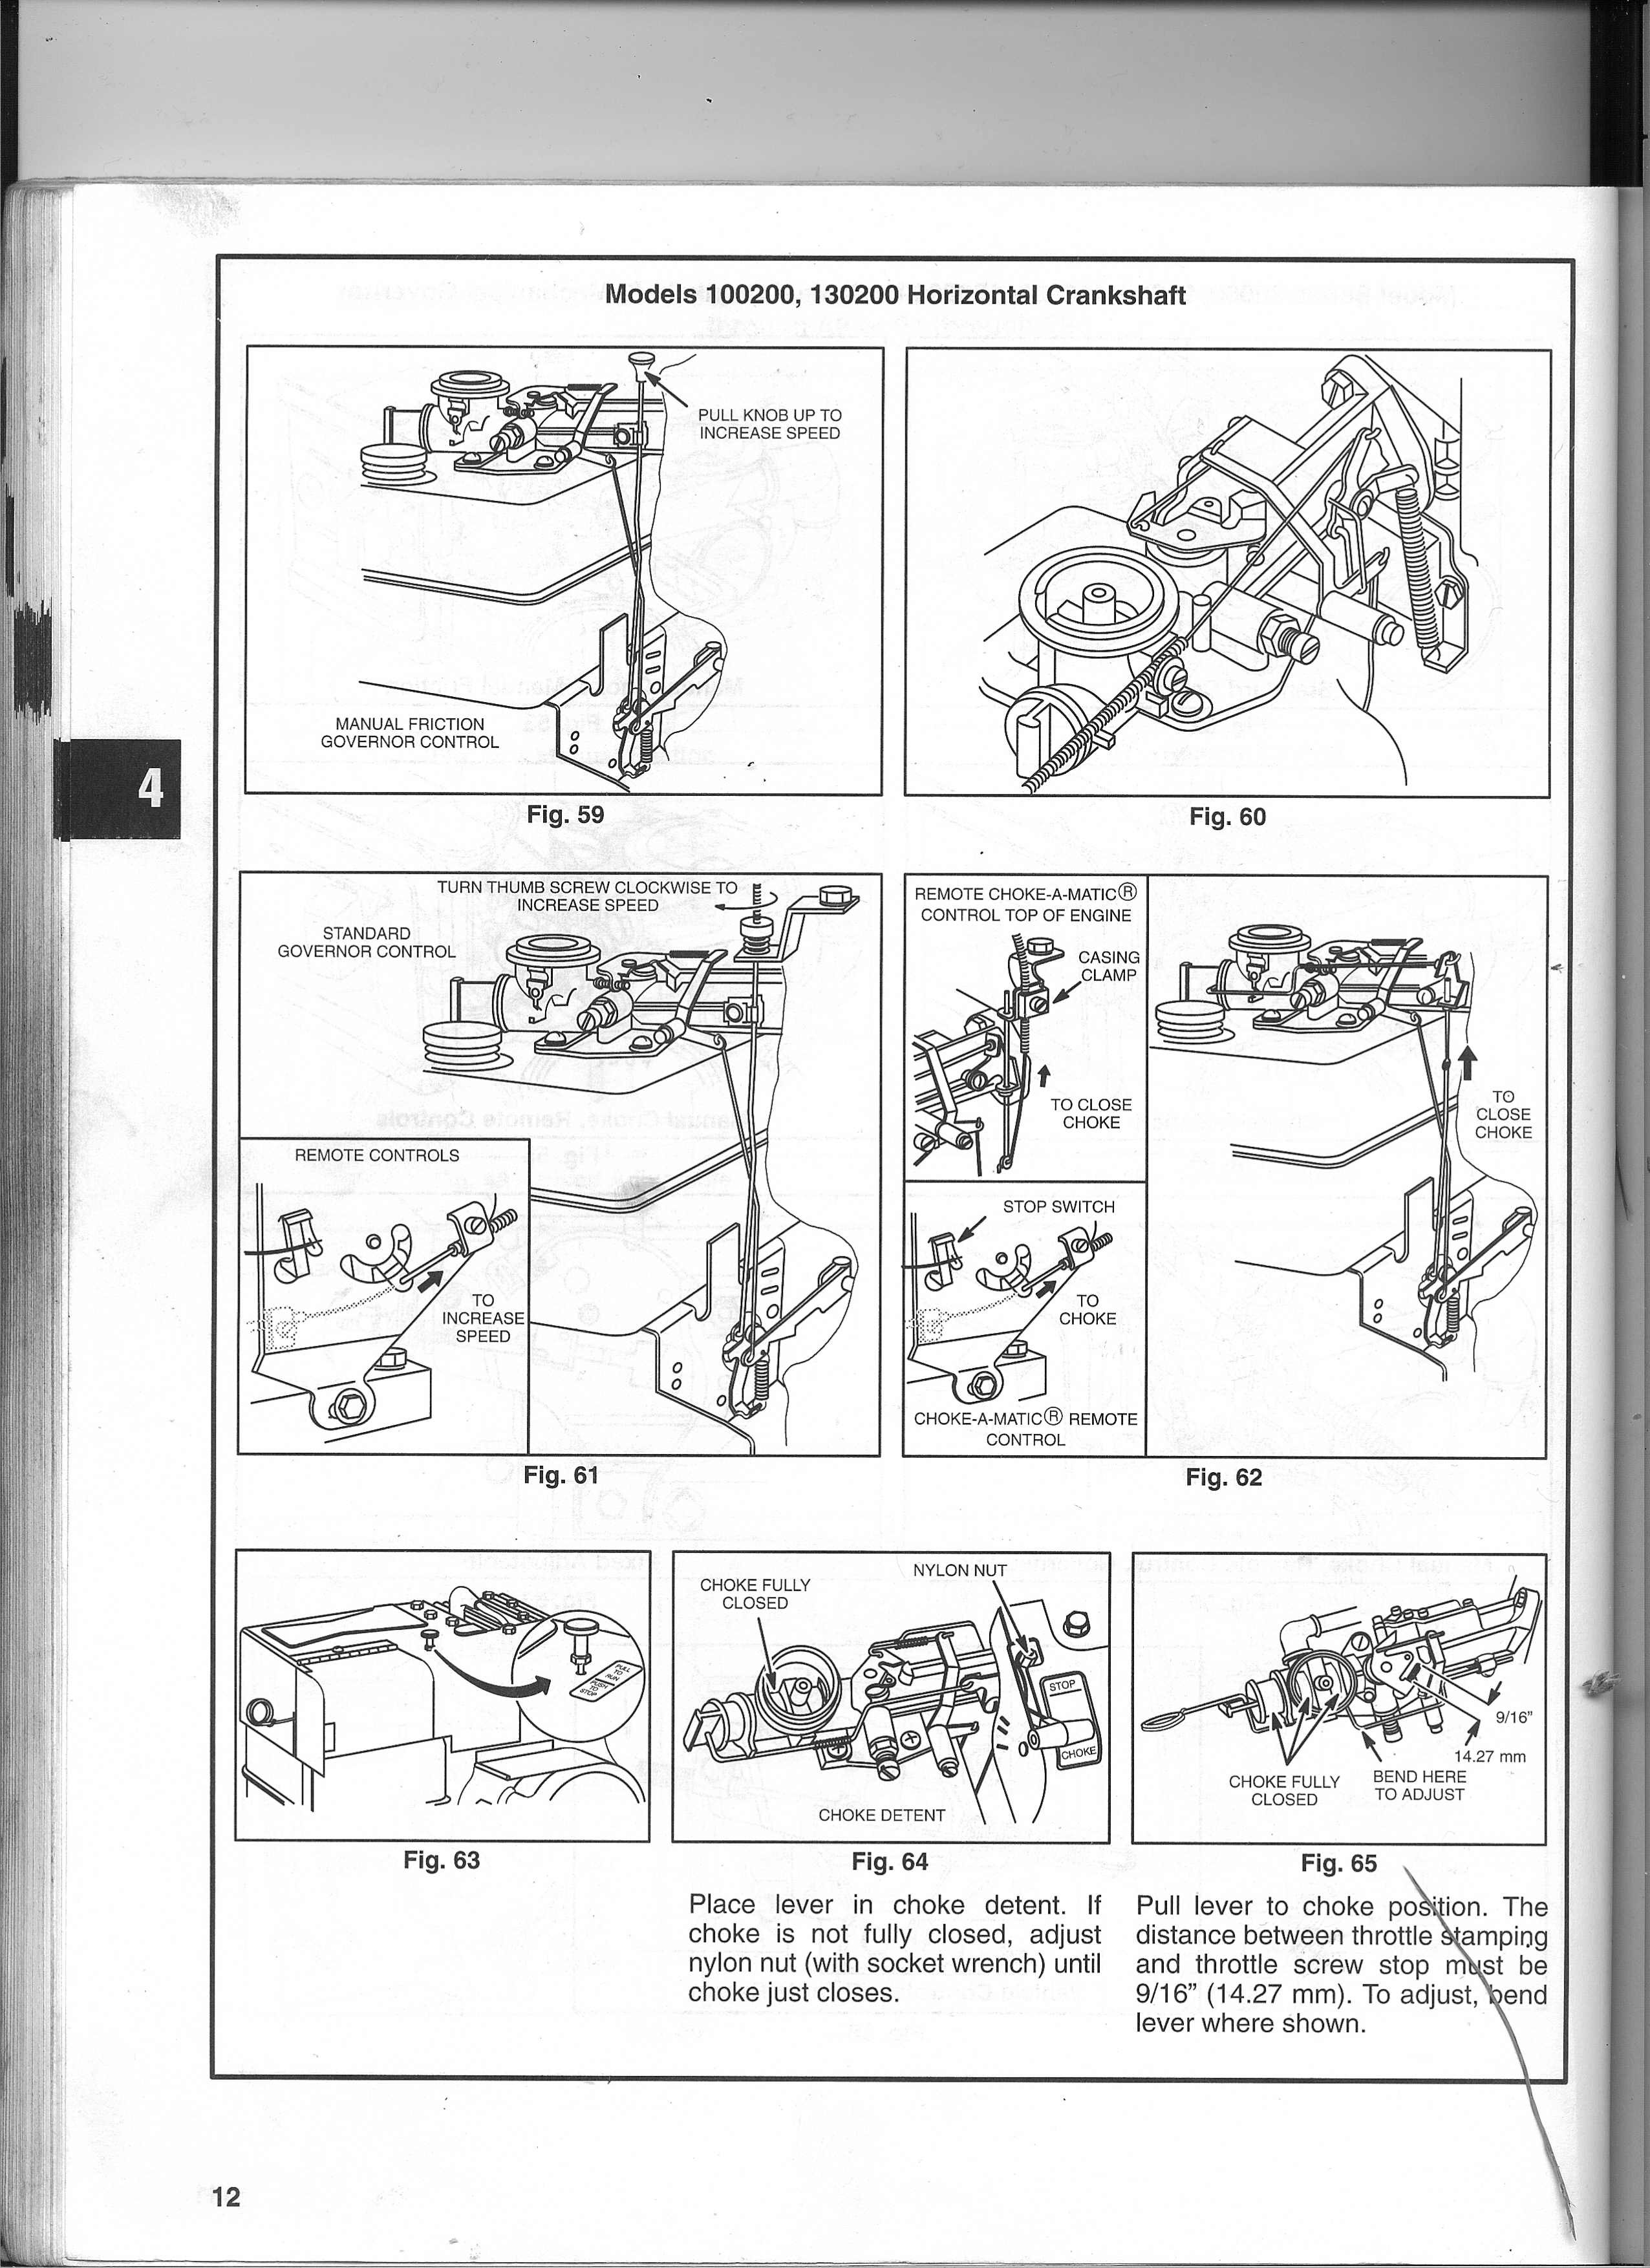 Briggs and Stratton Engine Parts Diagram Stunning Briggs and Stratton Engine Breakdown Simple Wiring Of Briggs and Stratton Engine Parts Diagram